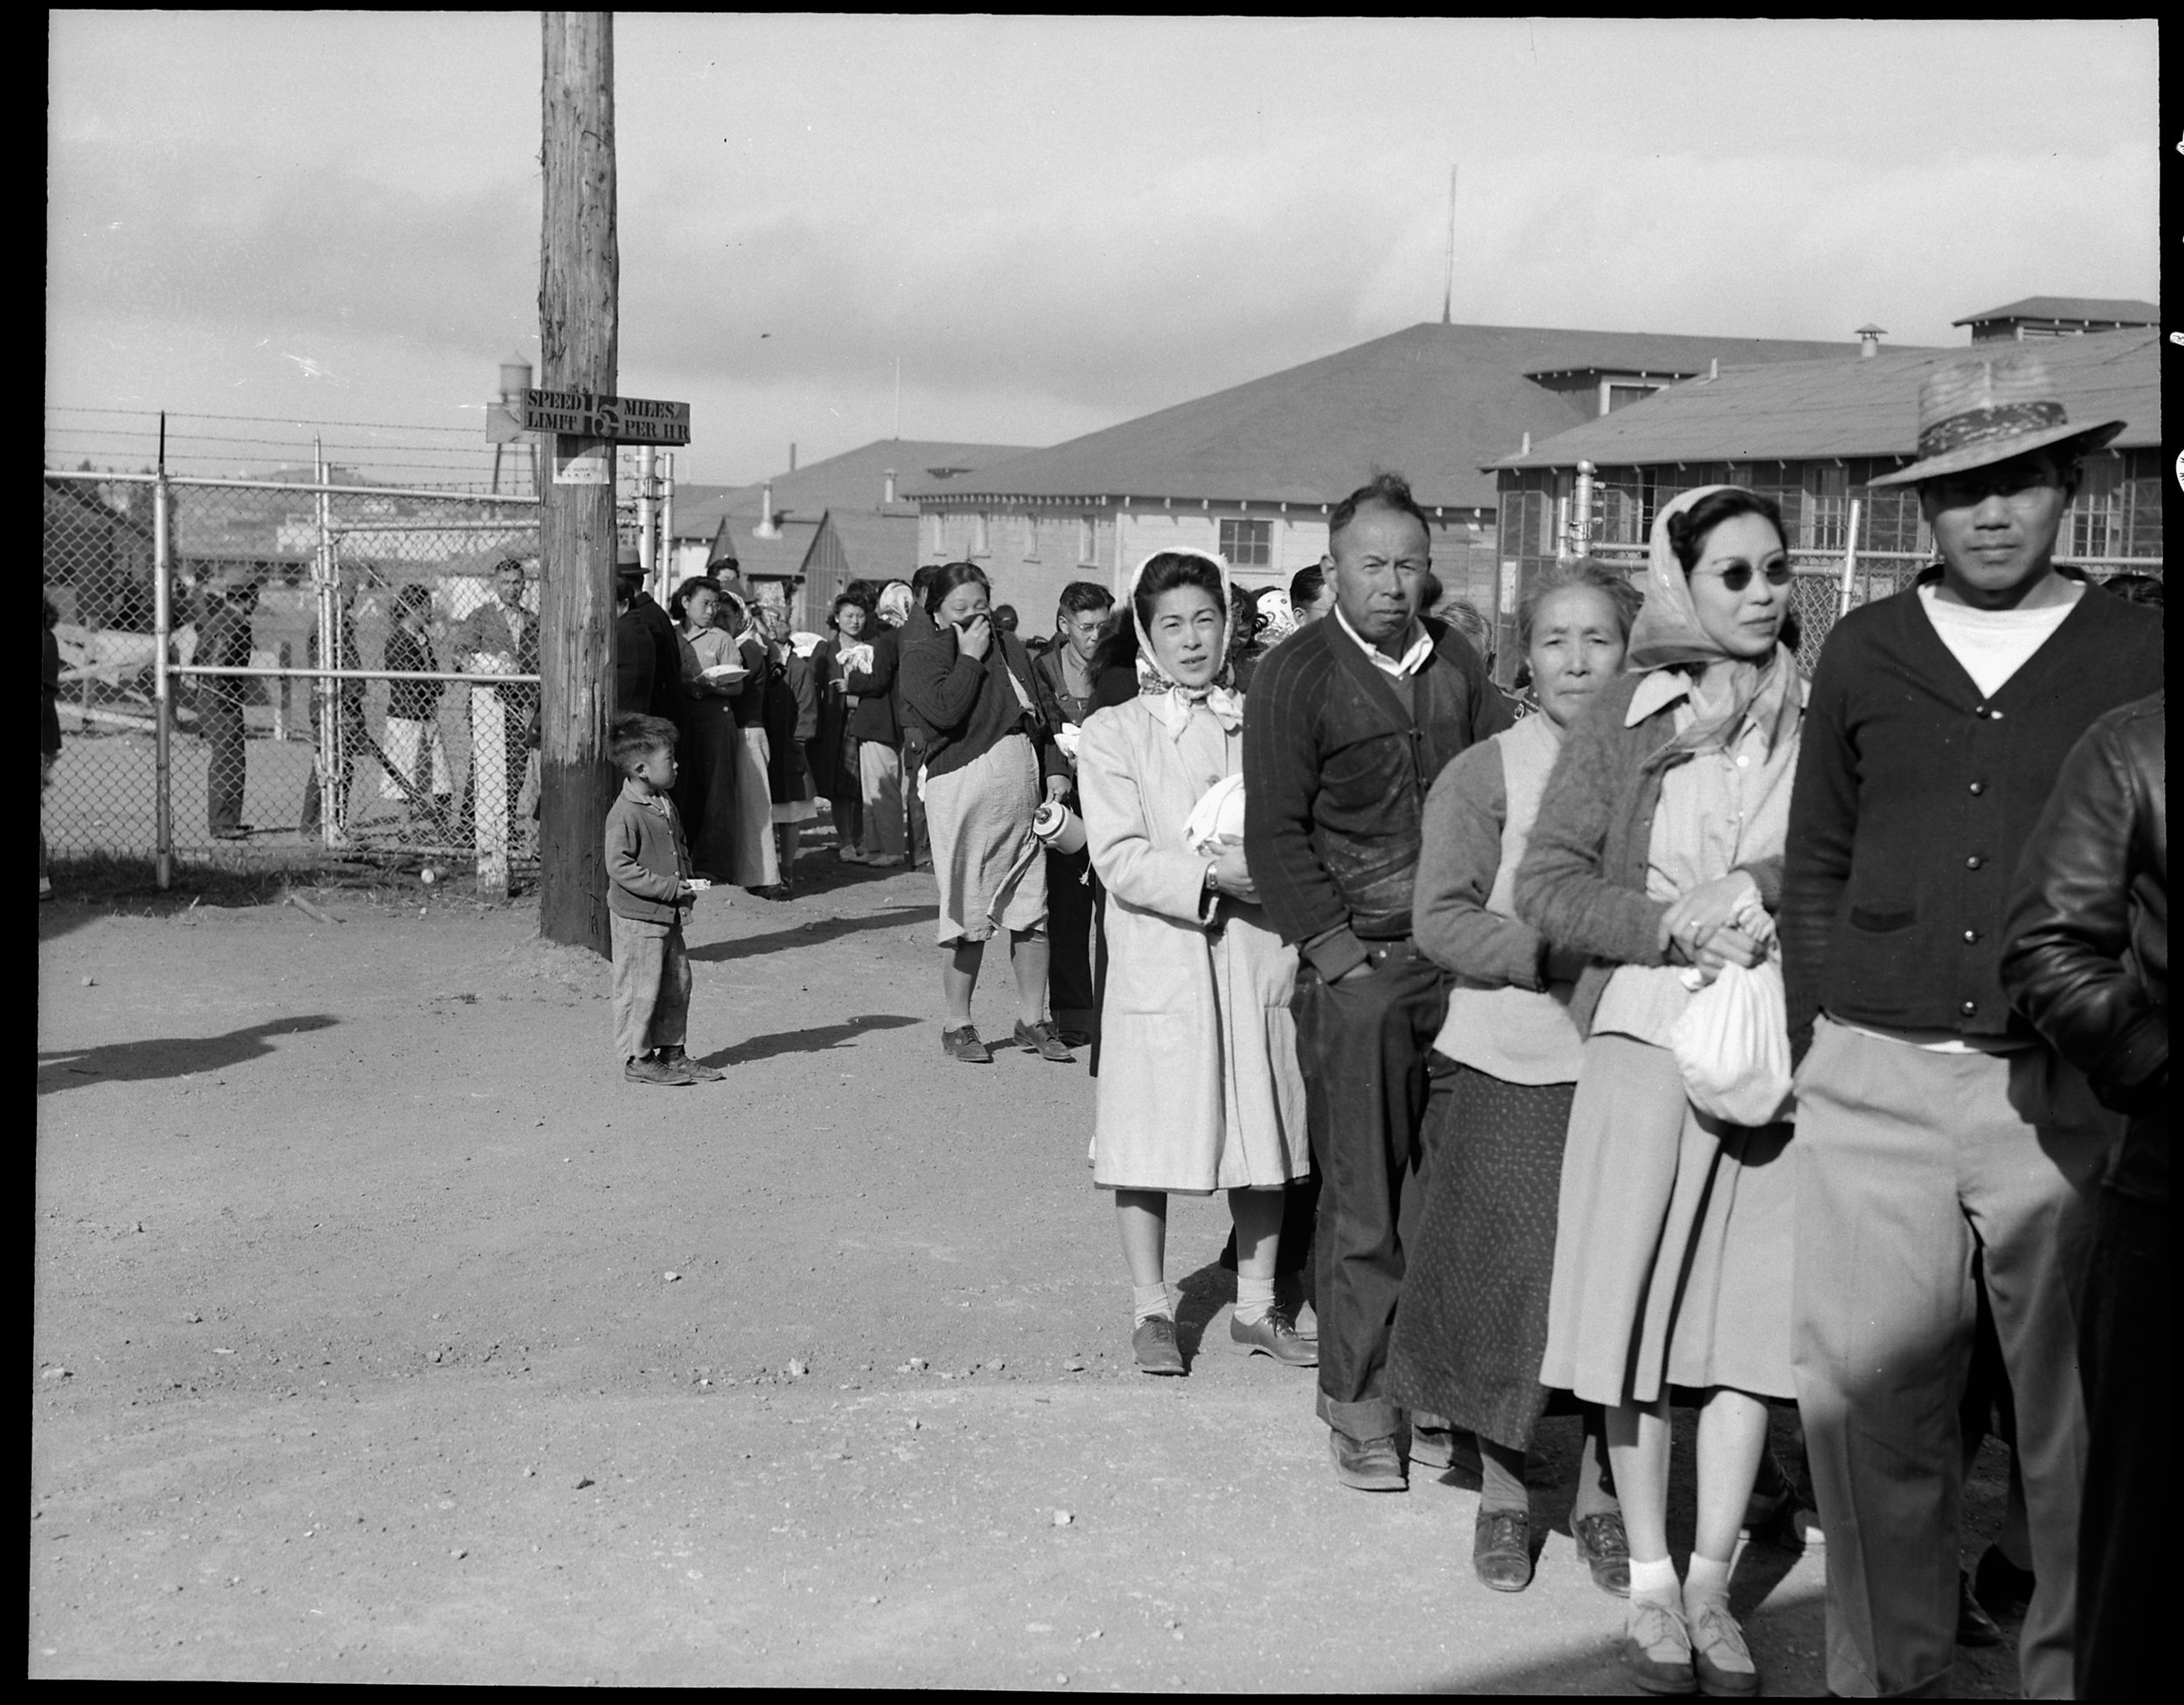 """June 16, 1942 — San Bruno, California. Supper time! Meal times are the big events of the day within an assembly center. This is a line-up of evacuees waiting for the """"B"""" shift at 5:45 pm. They carry with them their own dishes and cutlery in bags to protect them from the dust. They, themselves, individually wash their own dishes after each meal, since dish washing facilities in the mess halls proved inadequate. Most of the residents prefer this second shift because they sometimes get second helpings, but the groups are rotated each week. There are eighteen mess halls in camp which, together, accomodate 8,000 persons three times a day. All food is prepared and served by evacuees."""